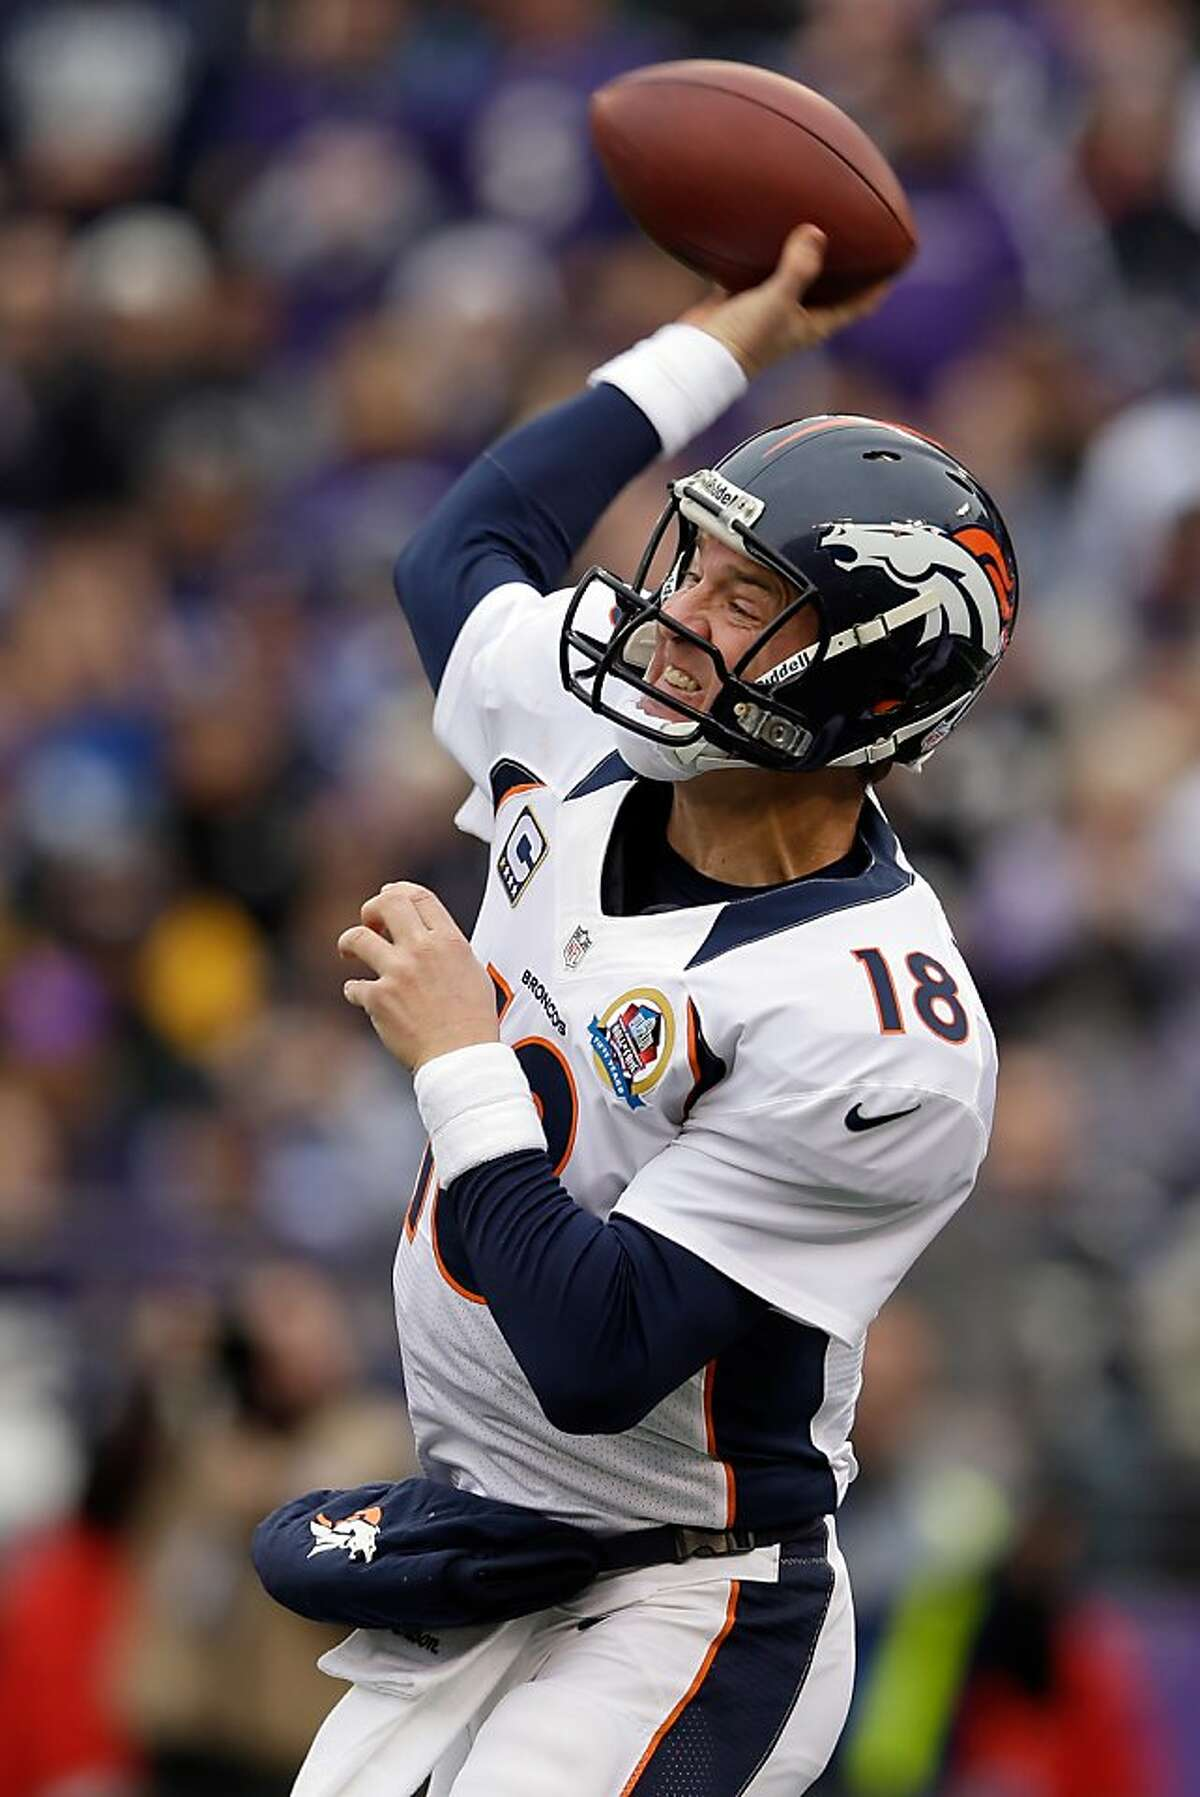 Peyton Manning picked up his ninth straight win over the Ravens.